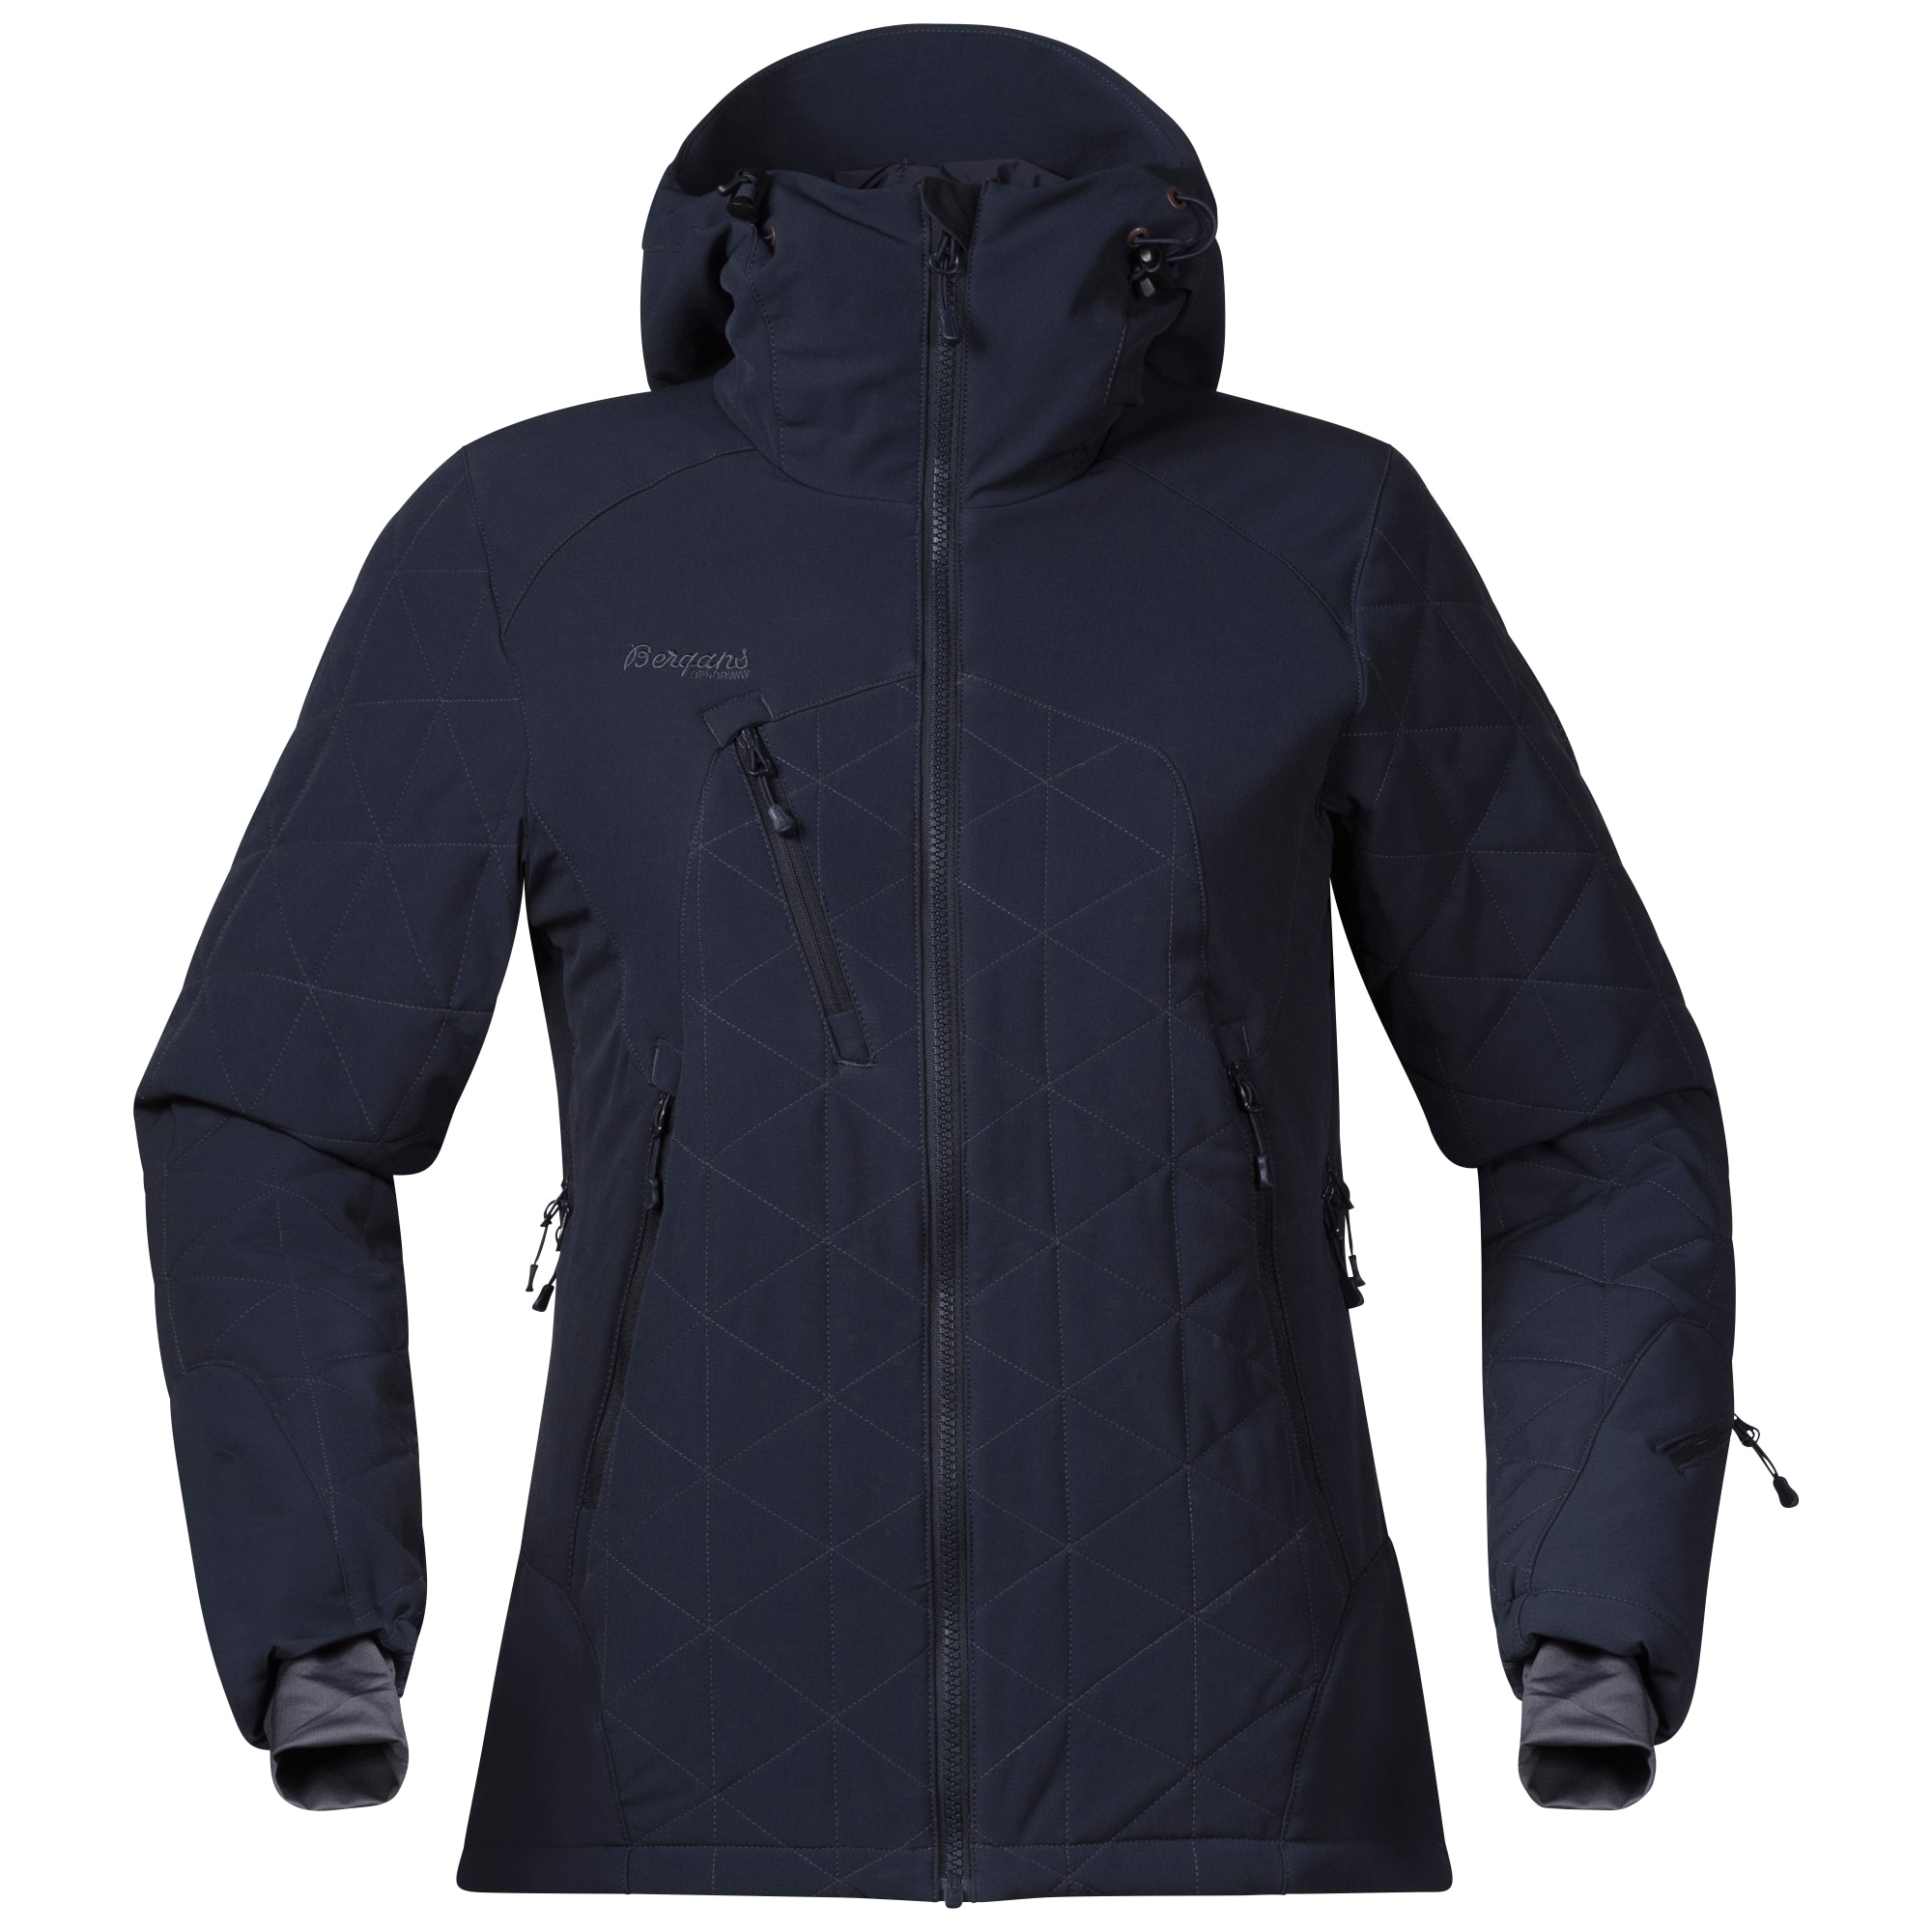 Kongsberg Insulated Lady Jacket